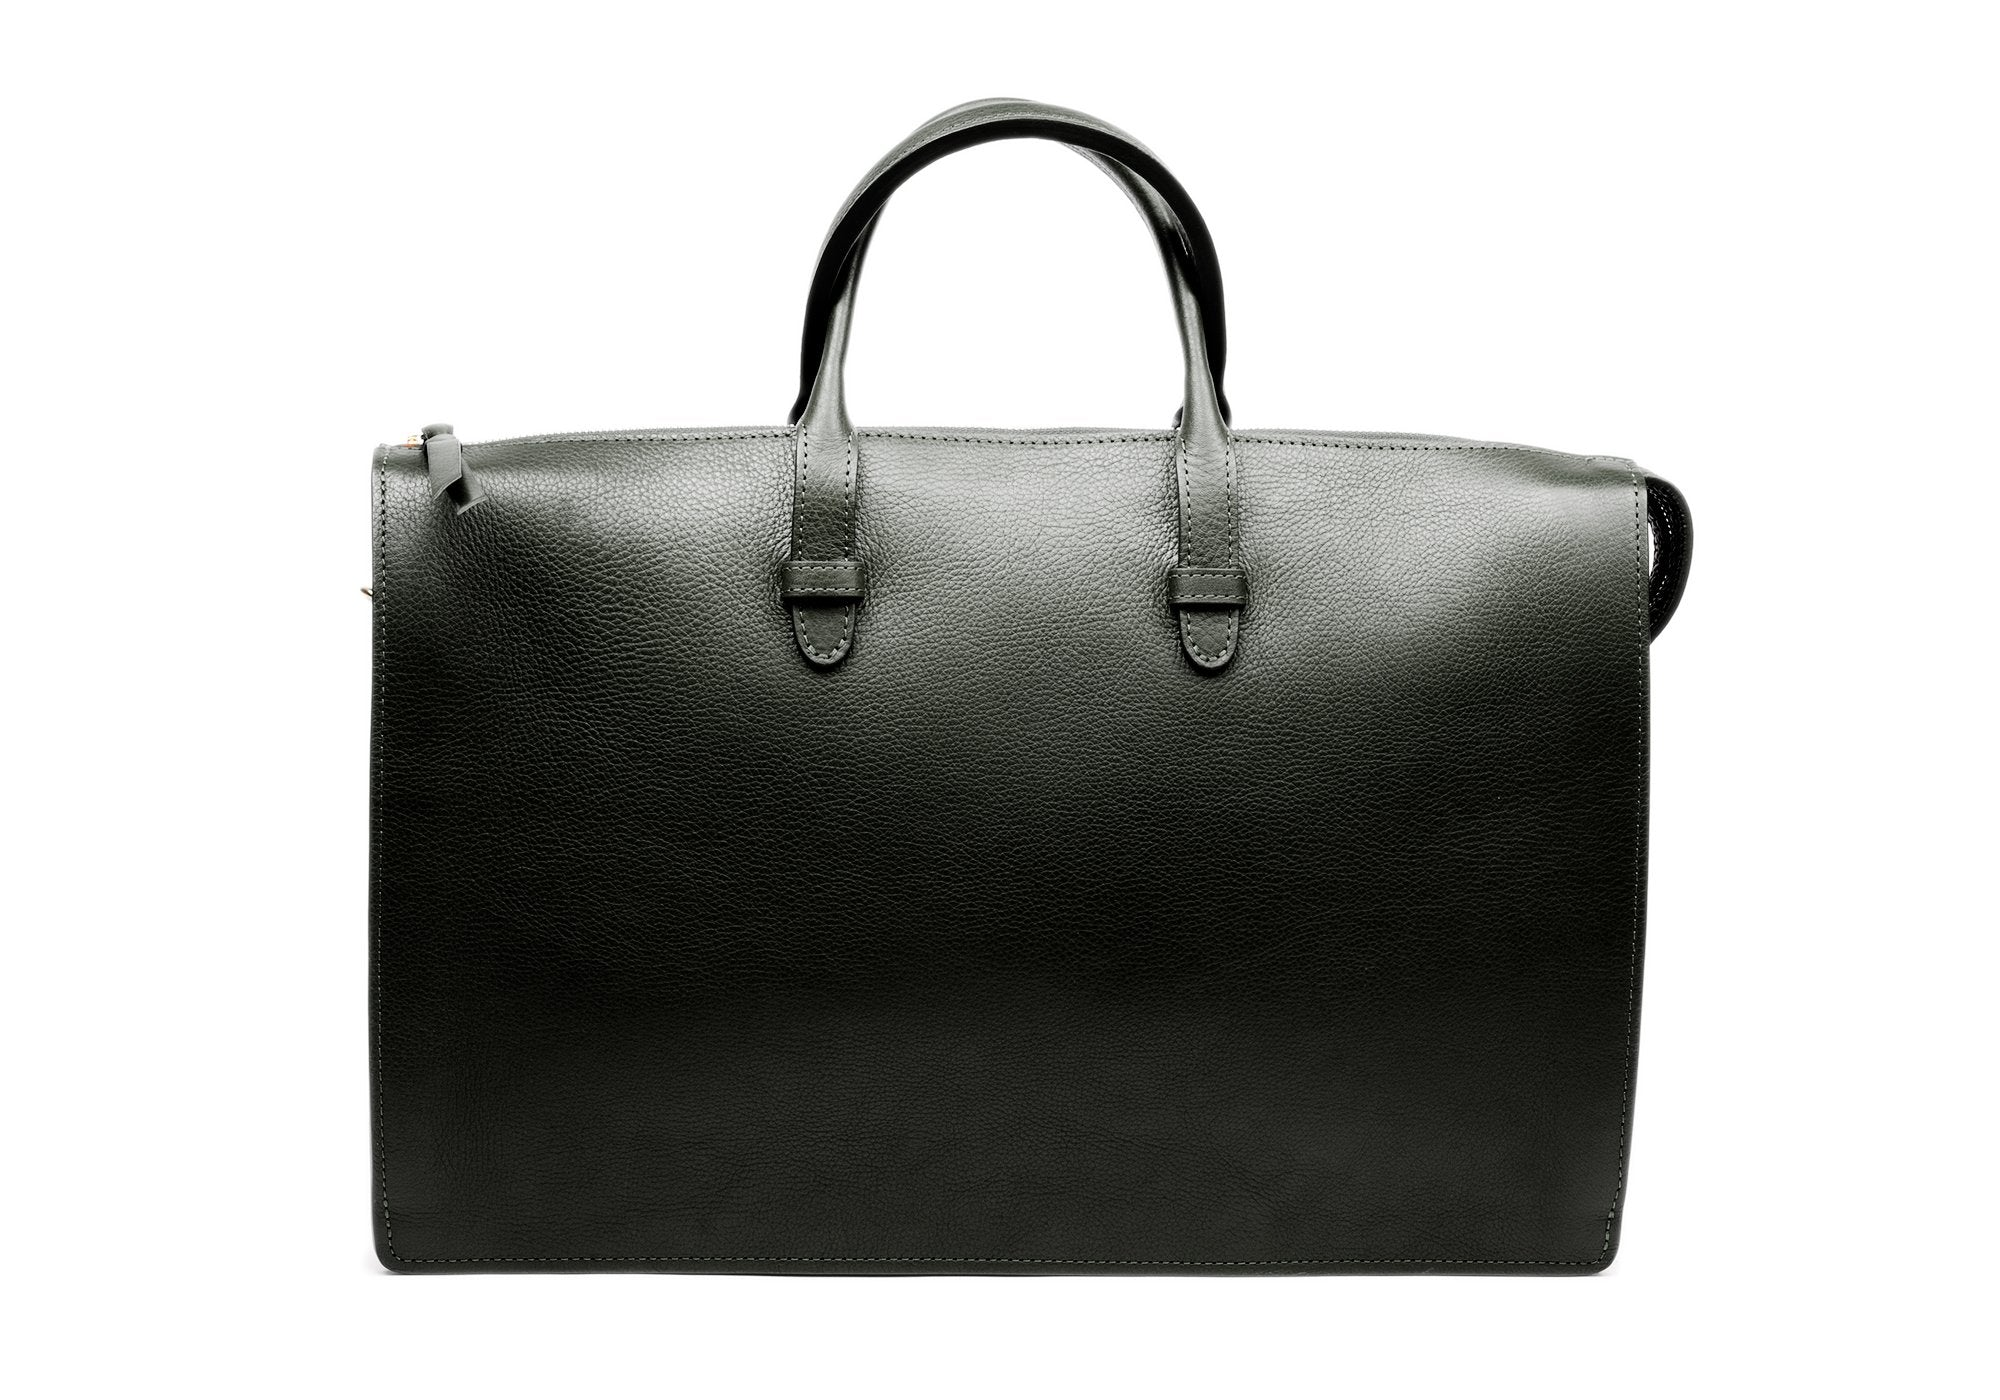 The Triumph Briefcase Green